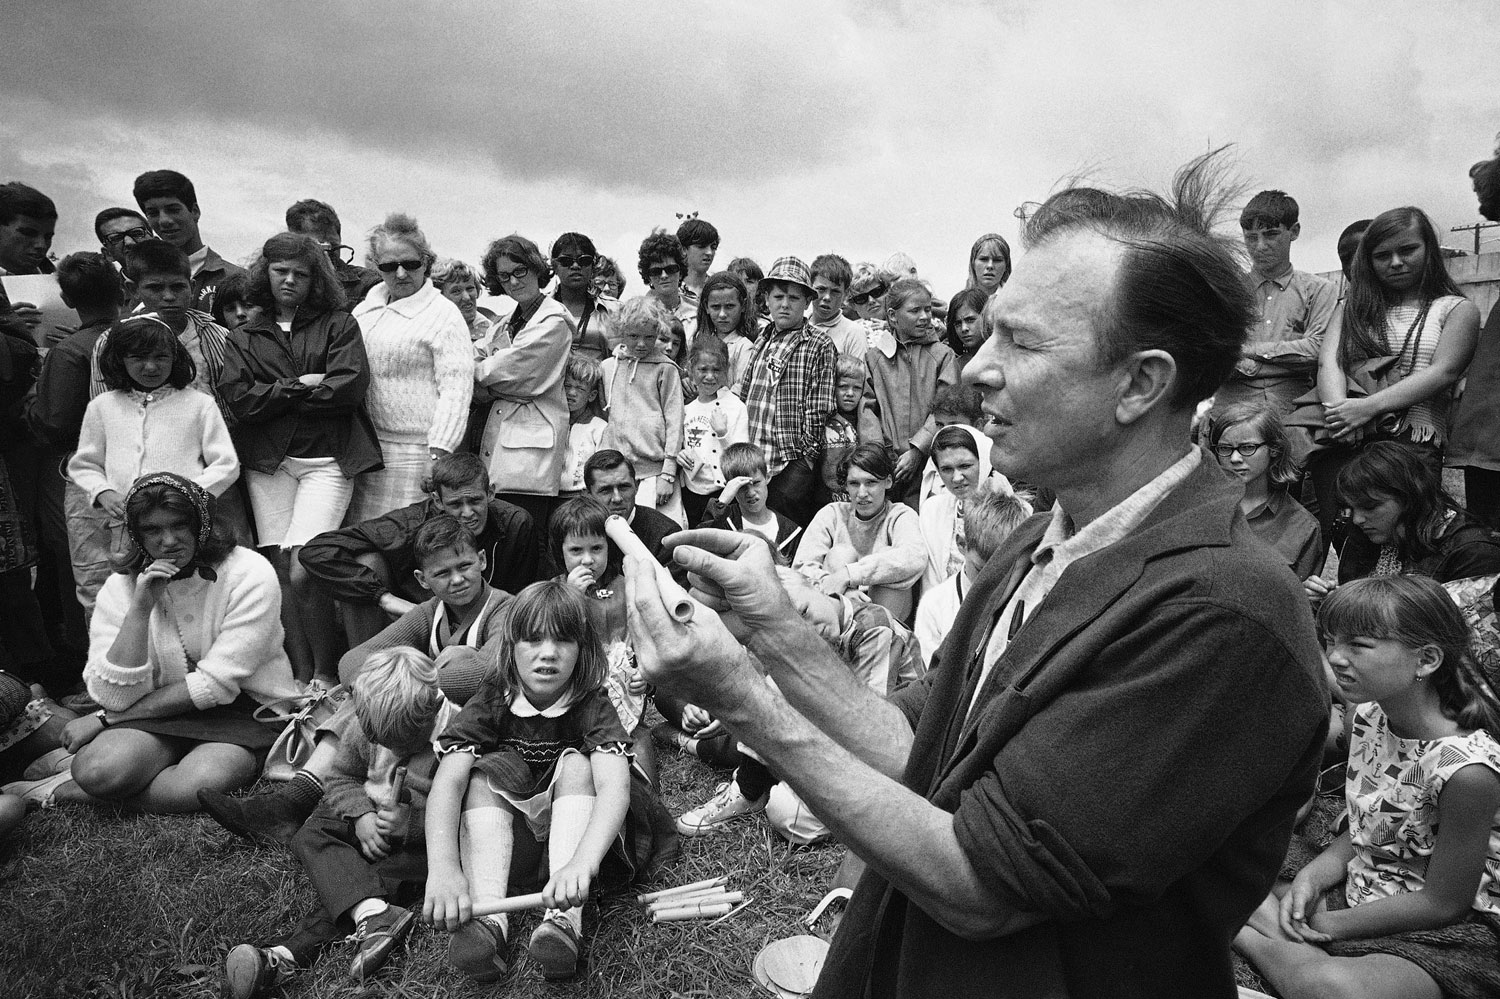 Pete Seeger conducts an instrument making session on Children's Day at the Newport, R.I., Folk Festival on July 20, 1966.